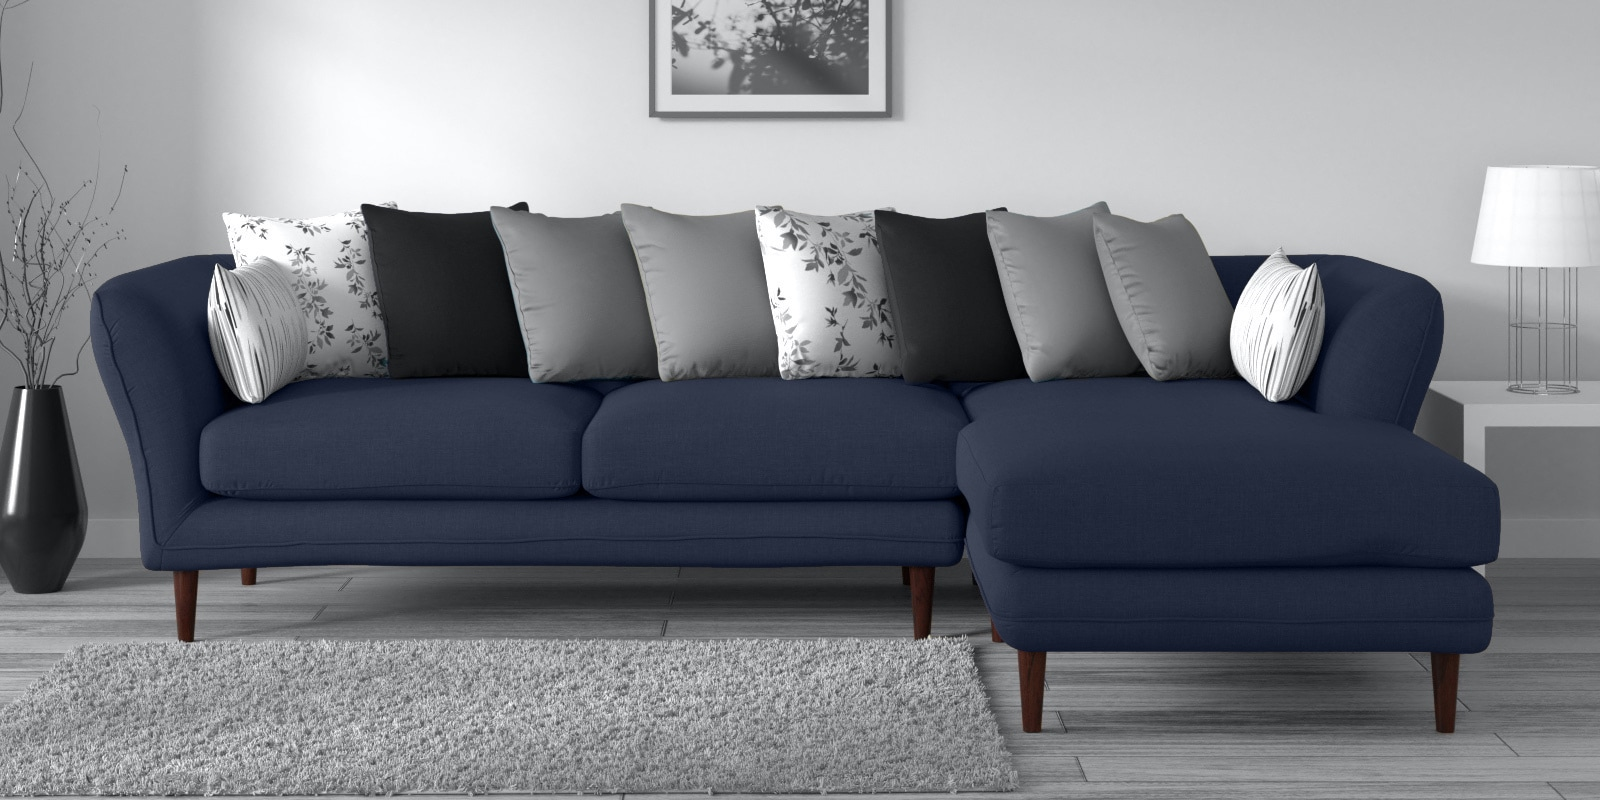 Buy Aleandro 3 Seater Lhs Sectional Sofa In Navy Blue Colour By Casacraft Online Contemporary Lhs Sectional Sofas Sectional Sofas Furniture Pepperfry Product